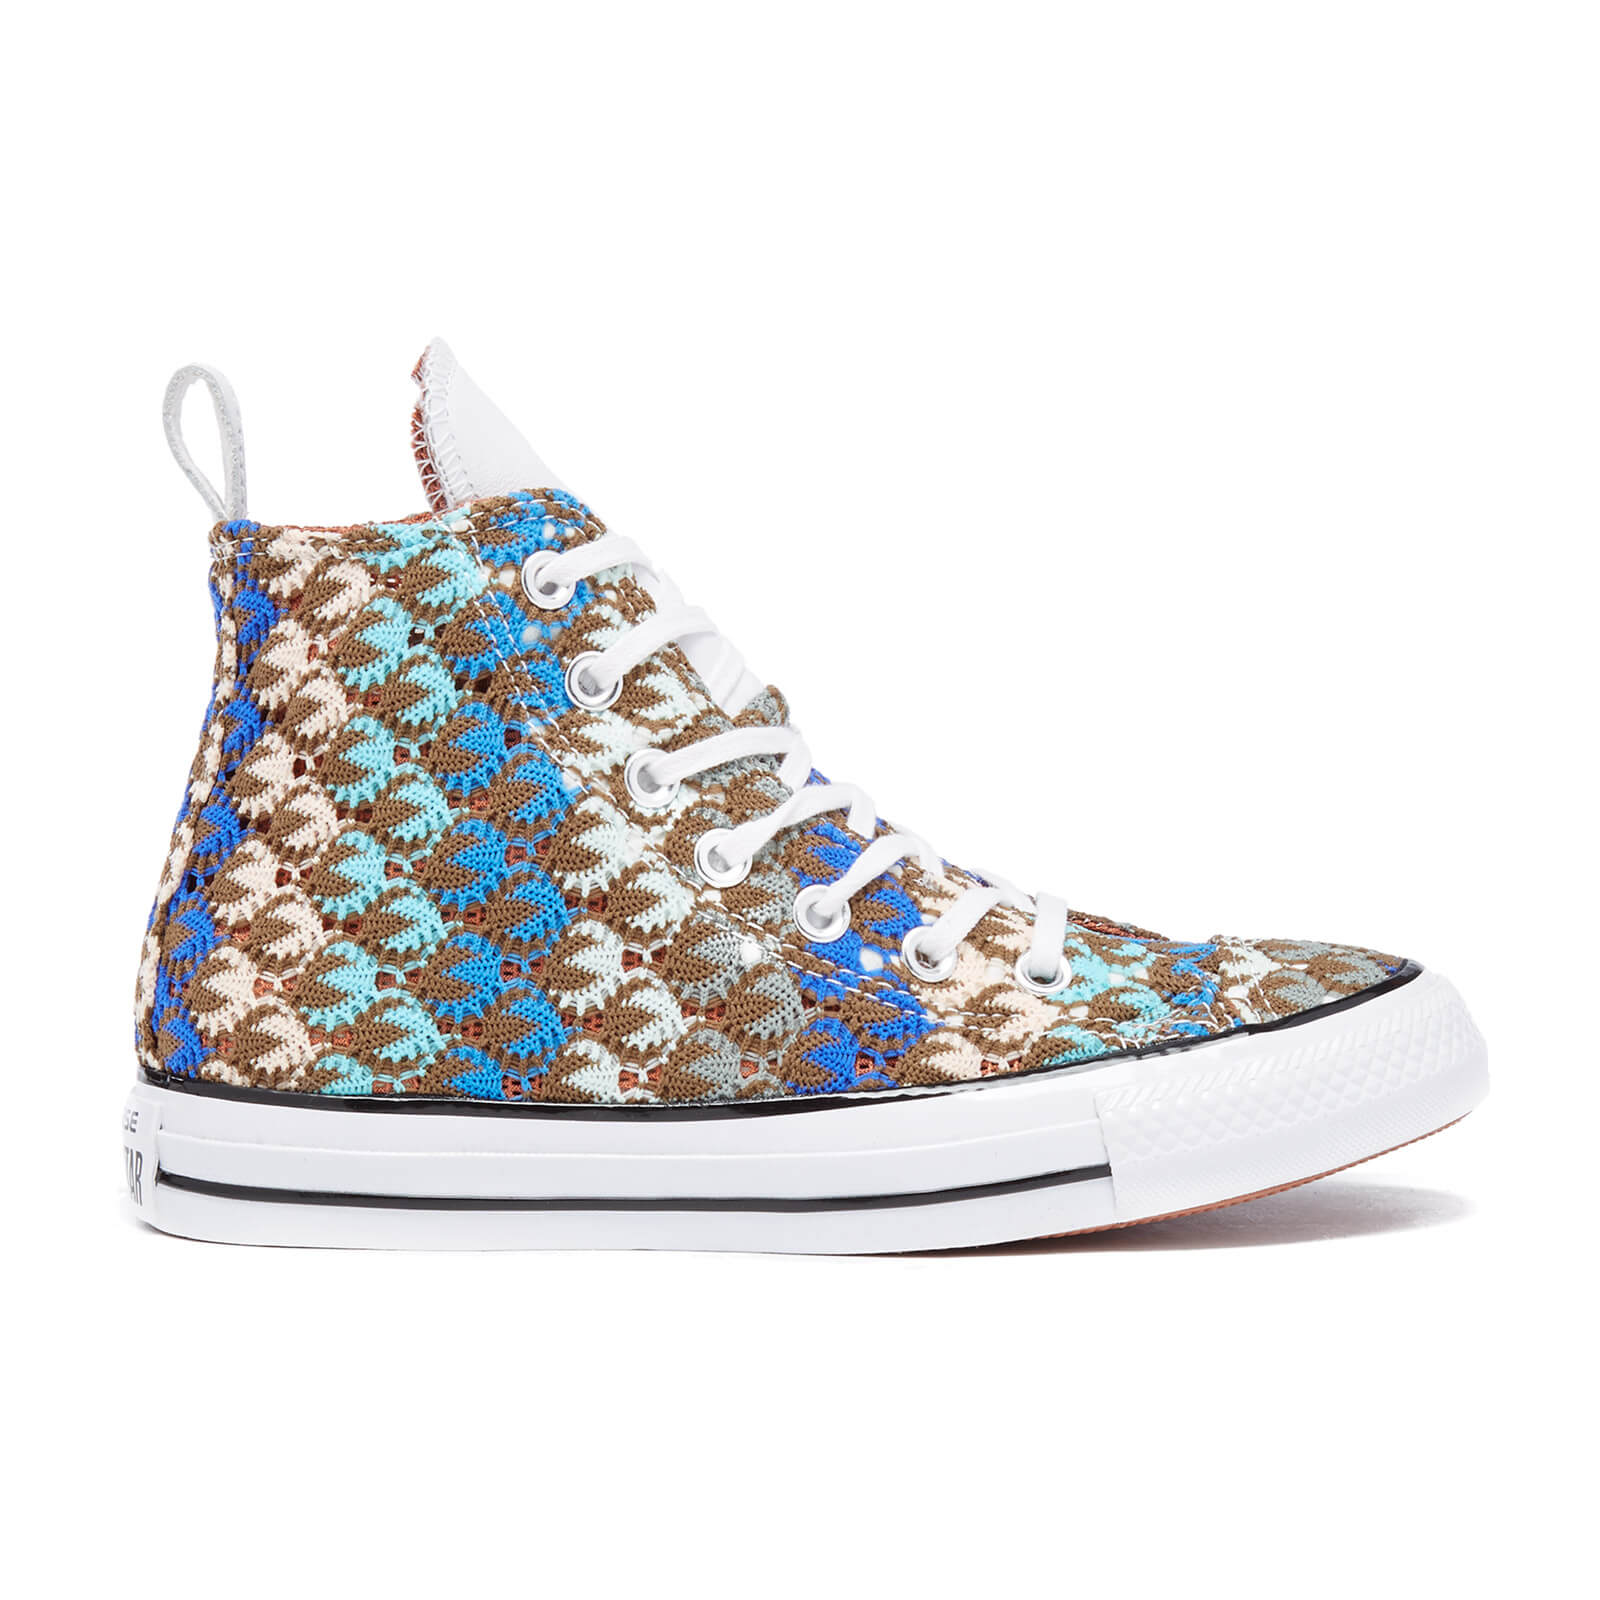 5a1c870b4376 Converse X Missoni Women s Chuck Taylor All Star Hi-Top Trainers -  Multi White Black - Free UK Delivery over £50